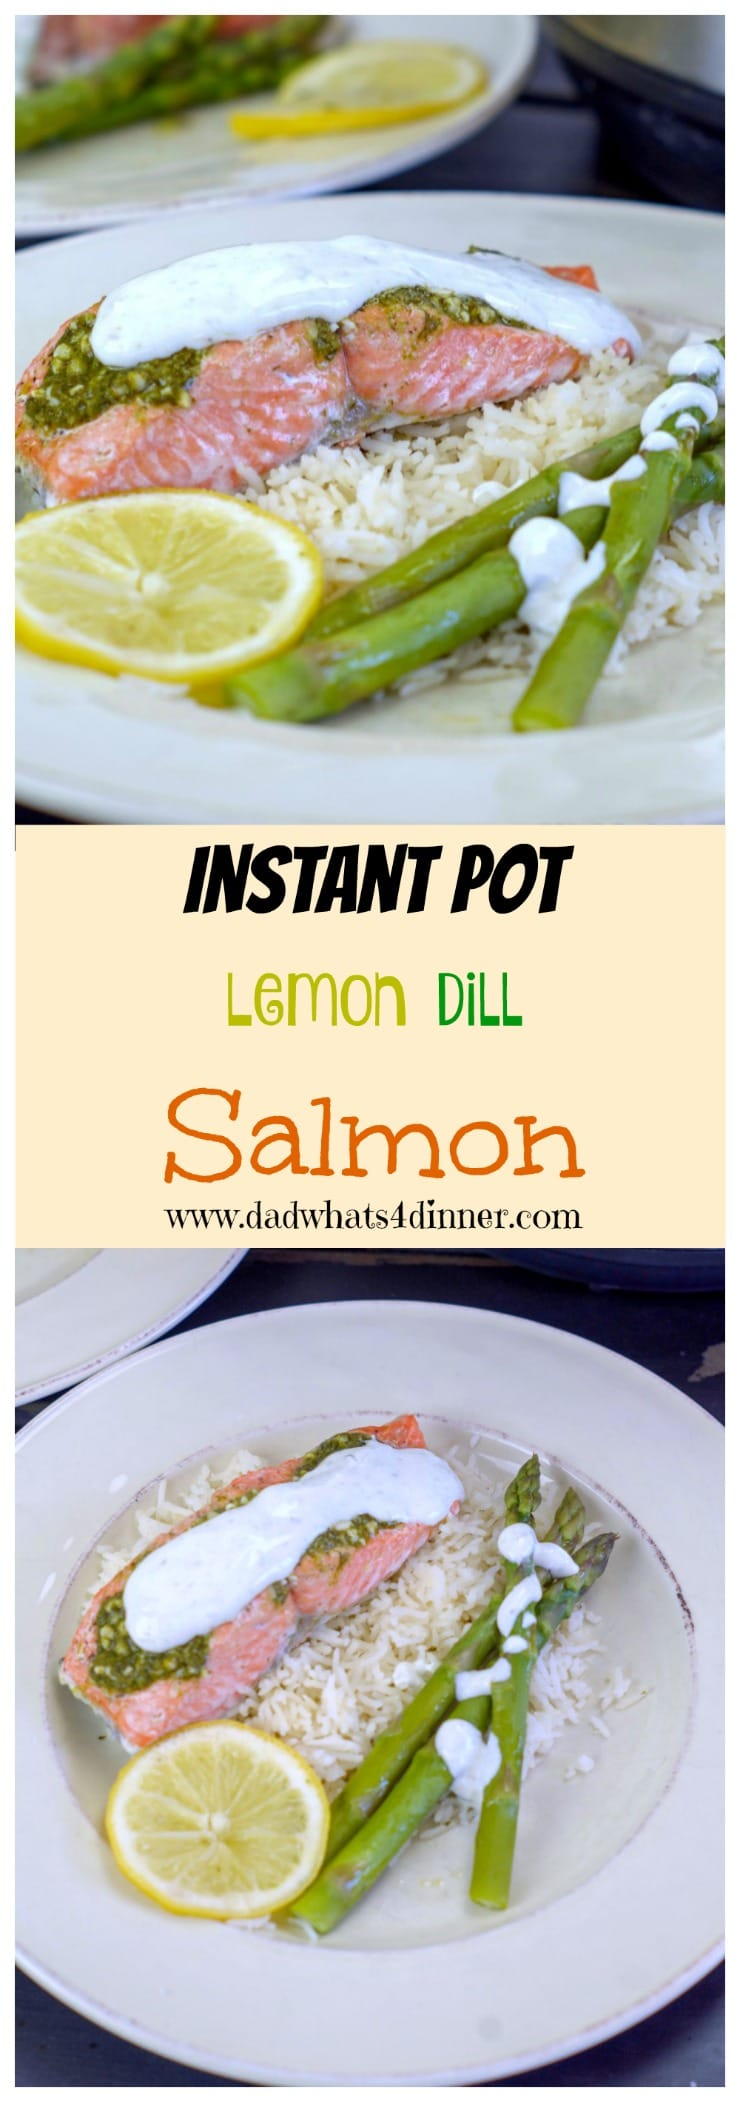 Pinterest image of Instant Pot Lemon Dill Salmon from www.dadwhats4dinner.com #ad #InstantPot #salmon #Dill #Healthy #lowfat